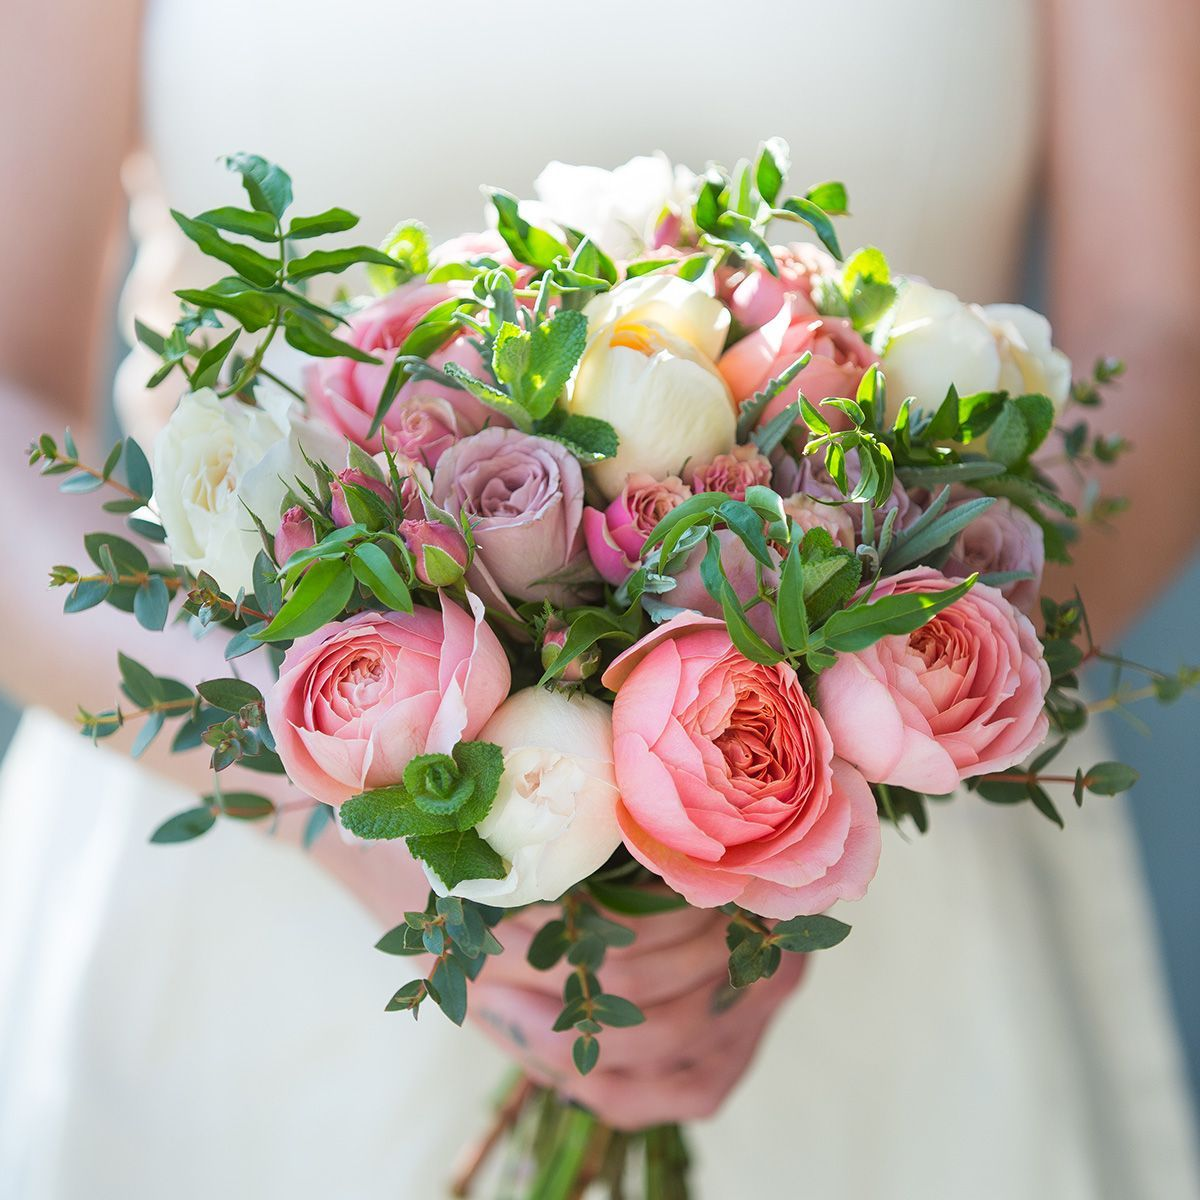 Flower Wedding Bouquet: Luxury Flowers For Delivery